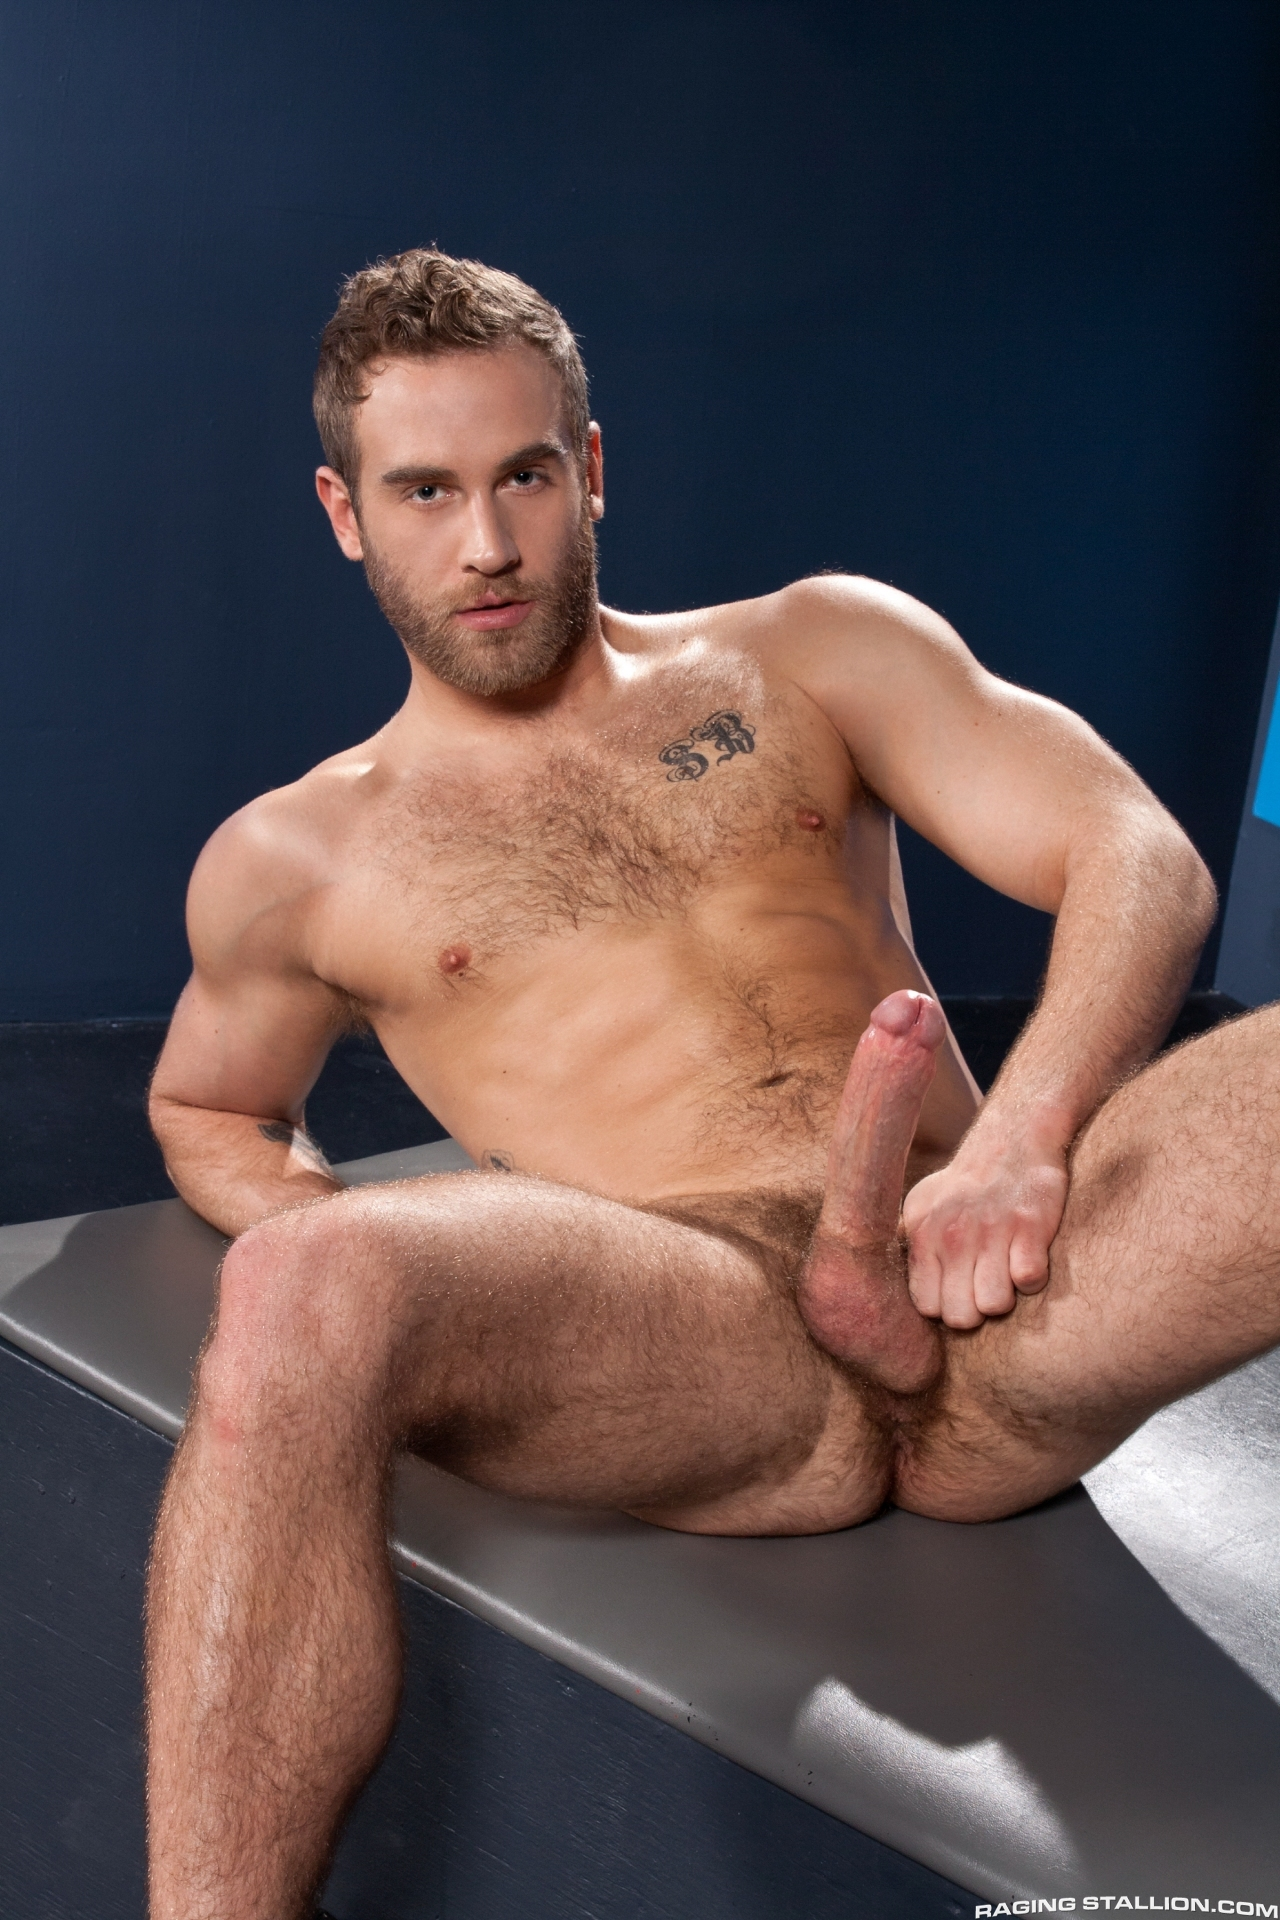 Lawson Kane fucks Shawn Wolfe in the gay porn film Want It Now by Raging Stallion.